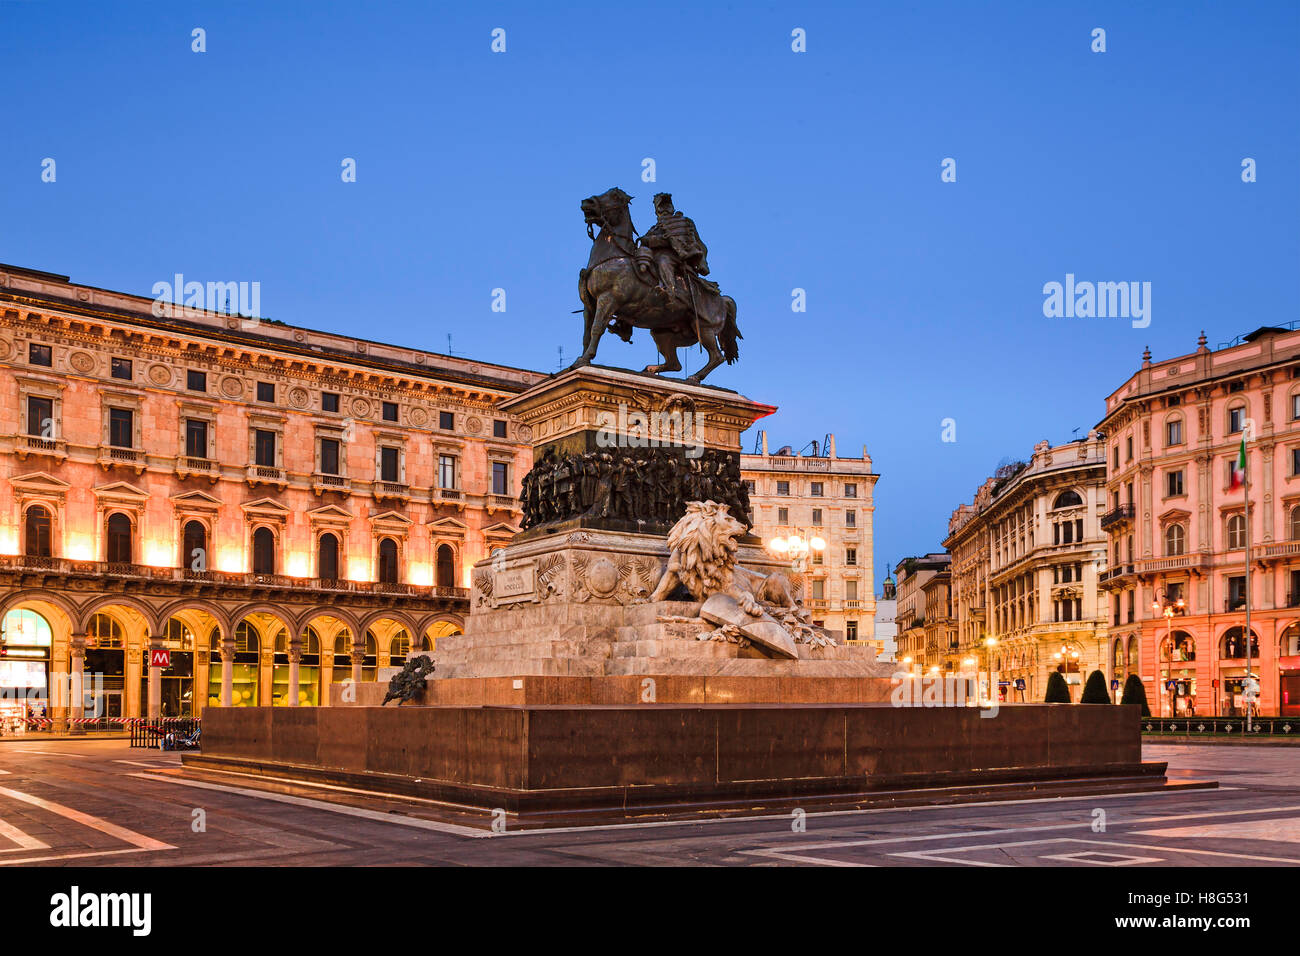 Equestrian statue of Vittorio Emanuele on Cathedral square in Milan, Italy, at sunrise - Stock Image